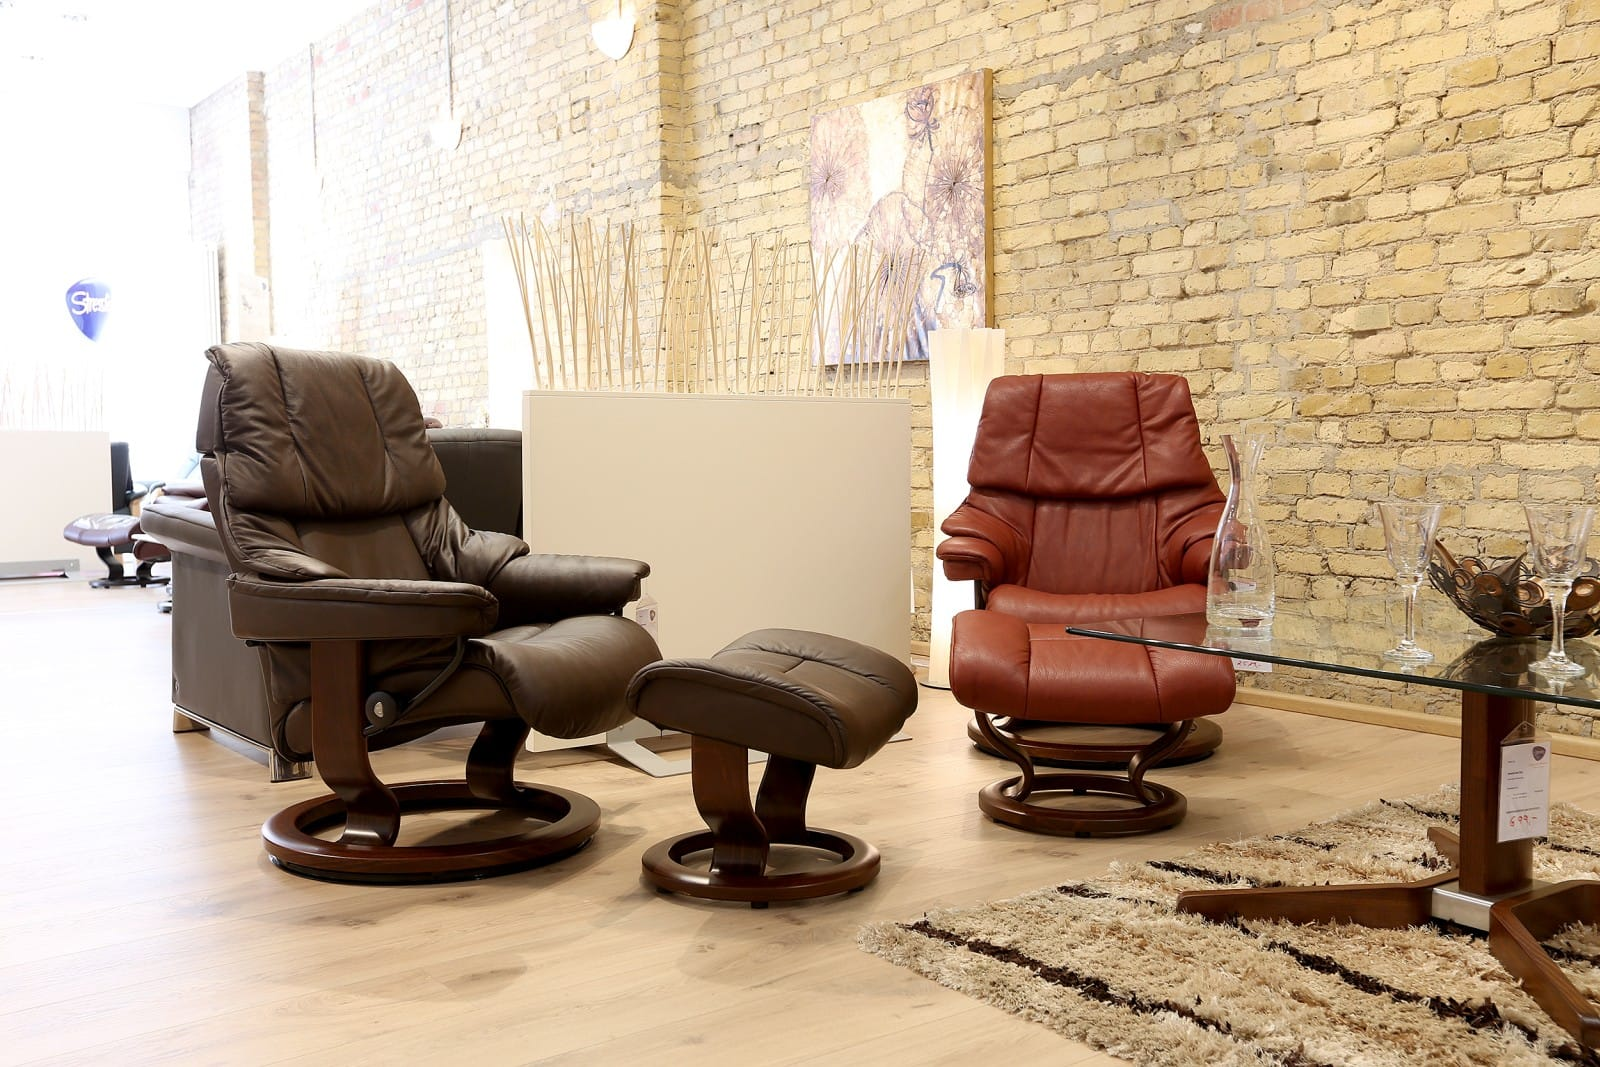 Stressless Sessel Berlin Wohnzimmerz Stressless Heimkino With Stressless House Of Comfort